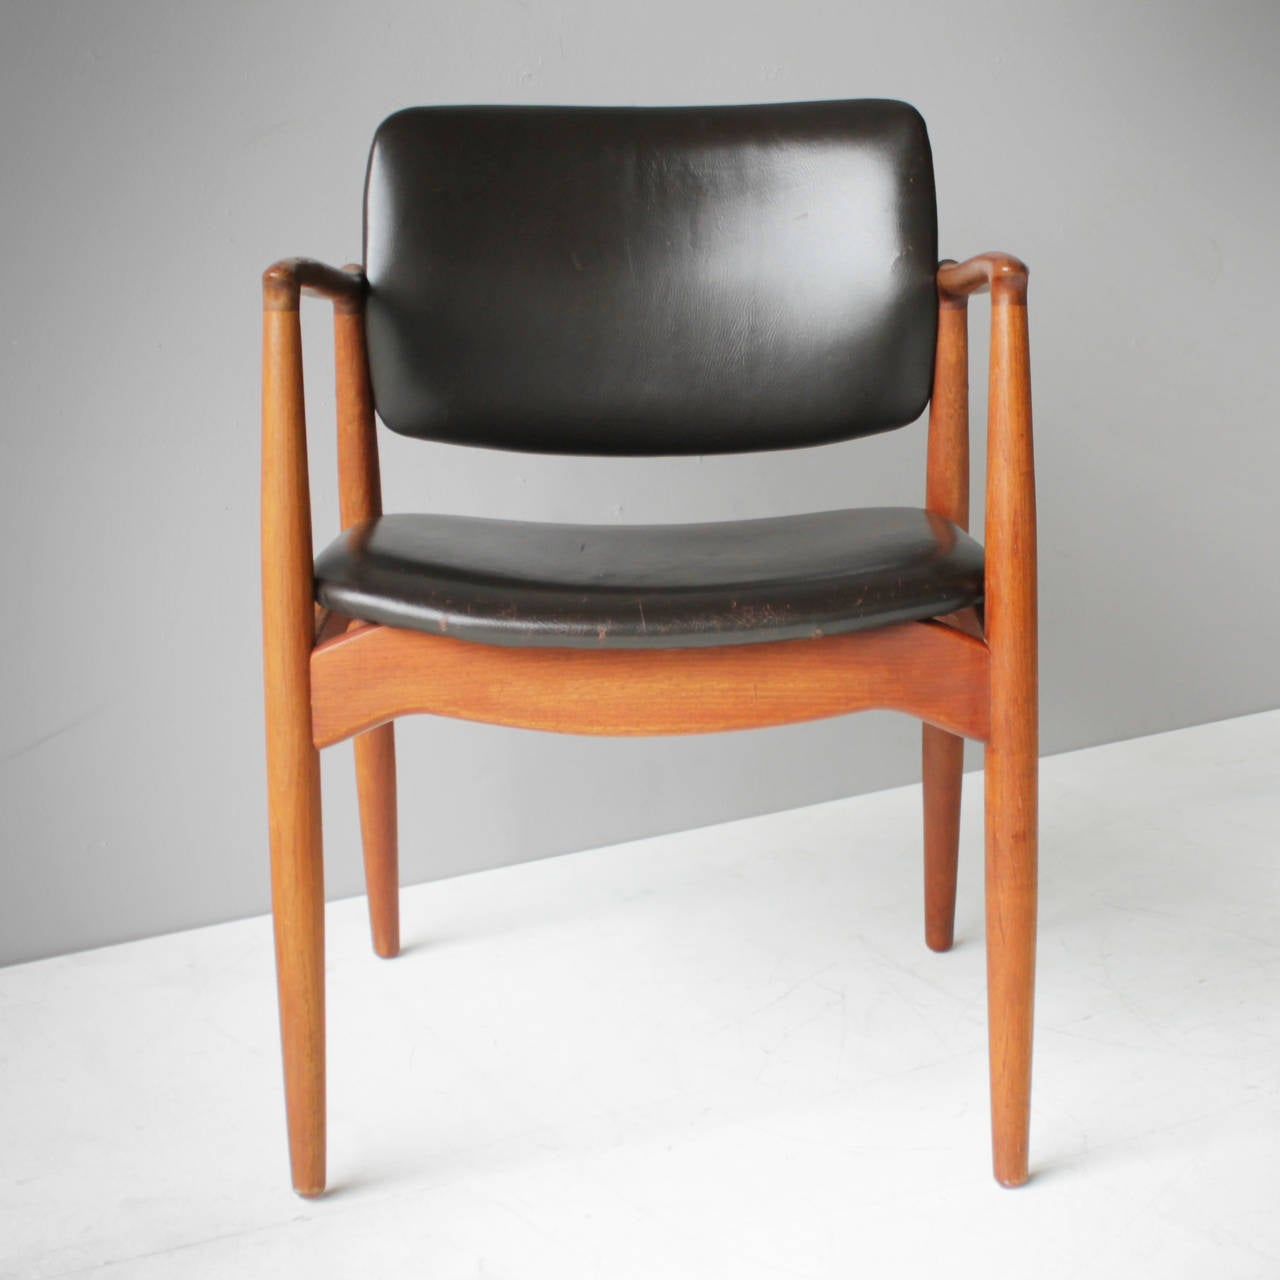 'Captain's Chair' by Eric Buck for Ørum Møbler, Denmark. Marked. Dark brown leather and teak. In a beautiful vintage condition.